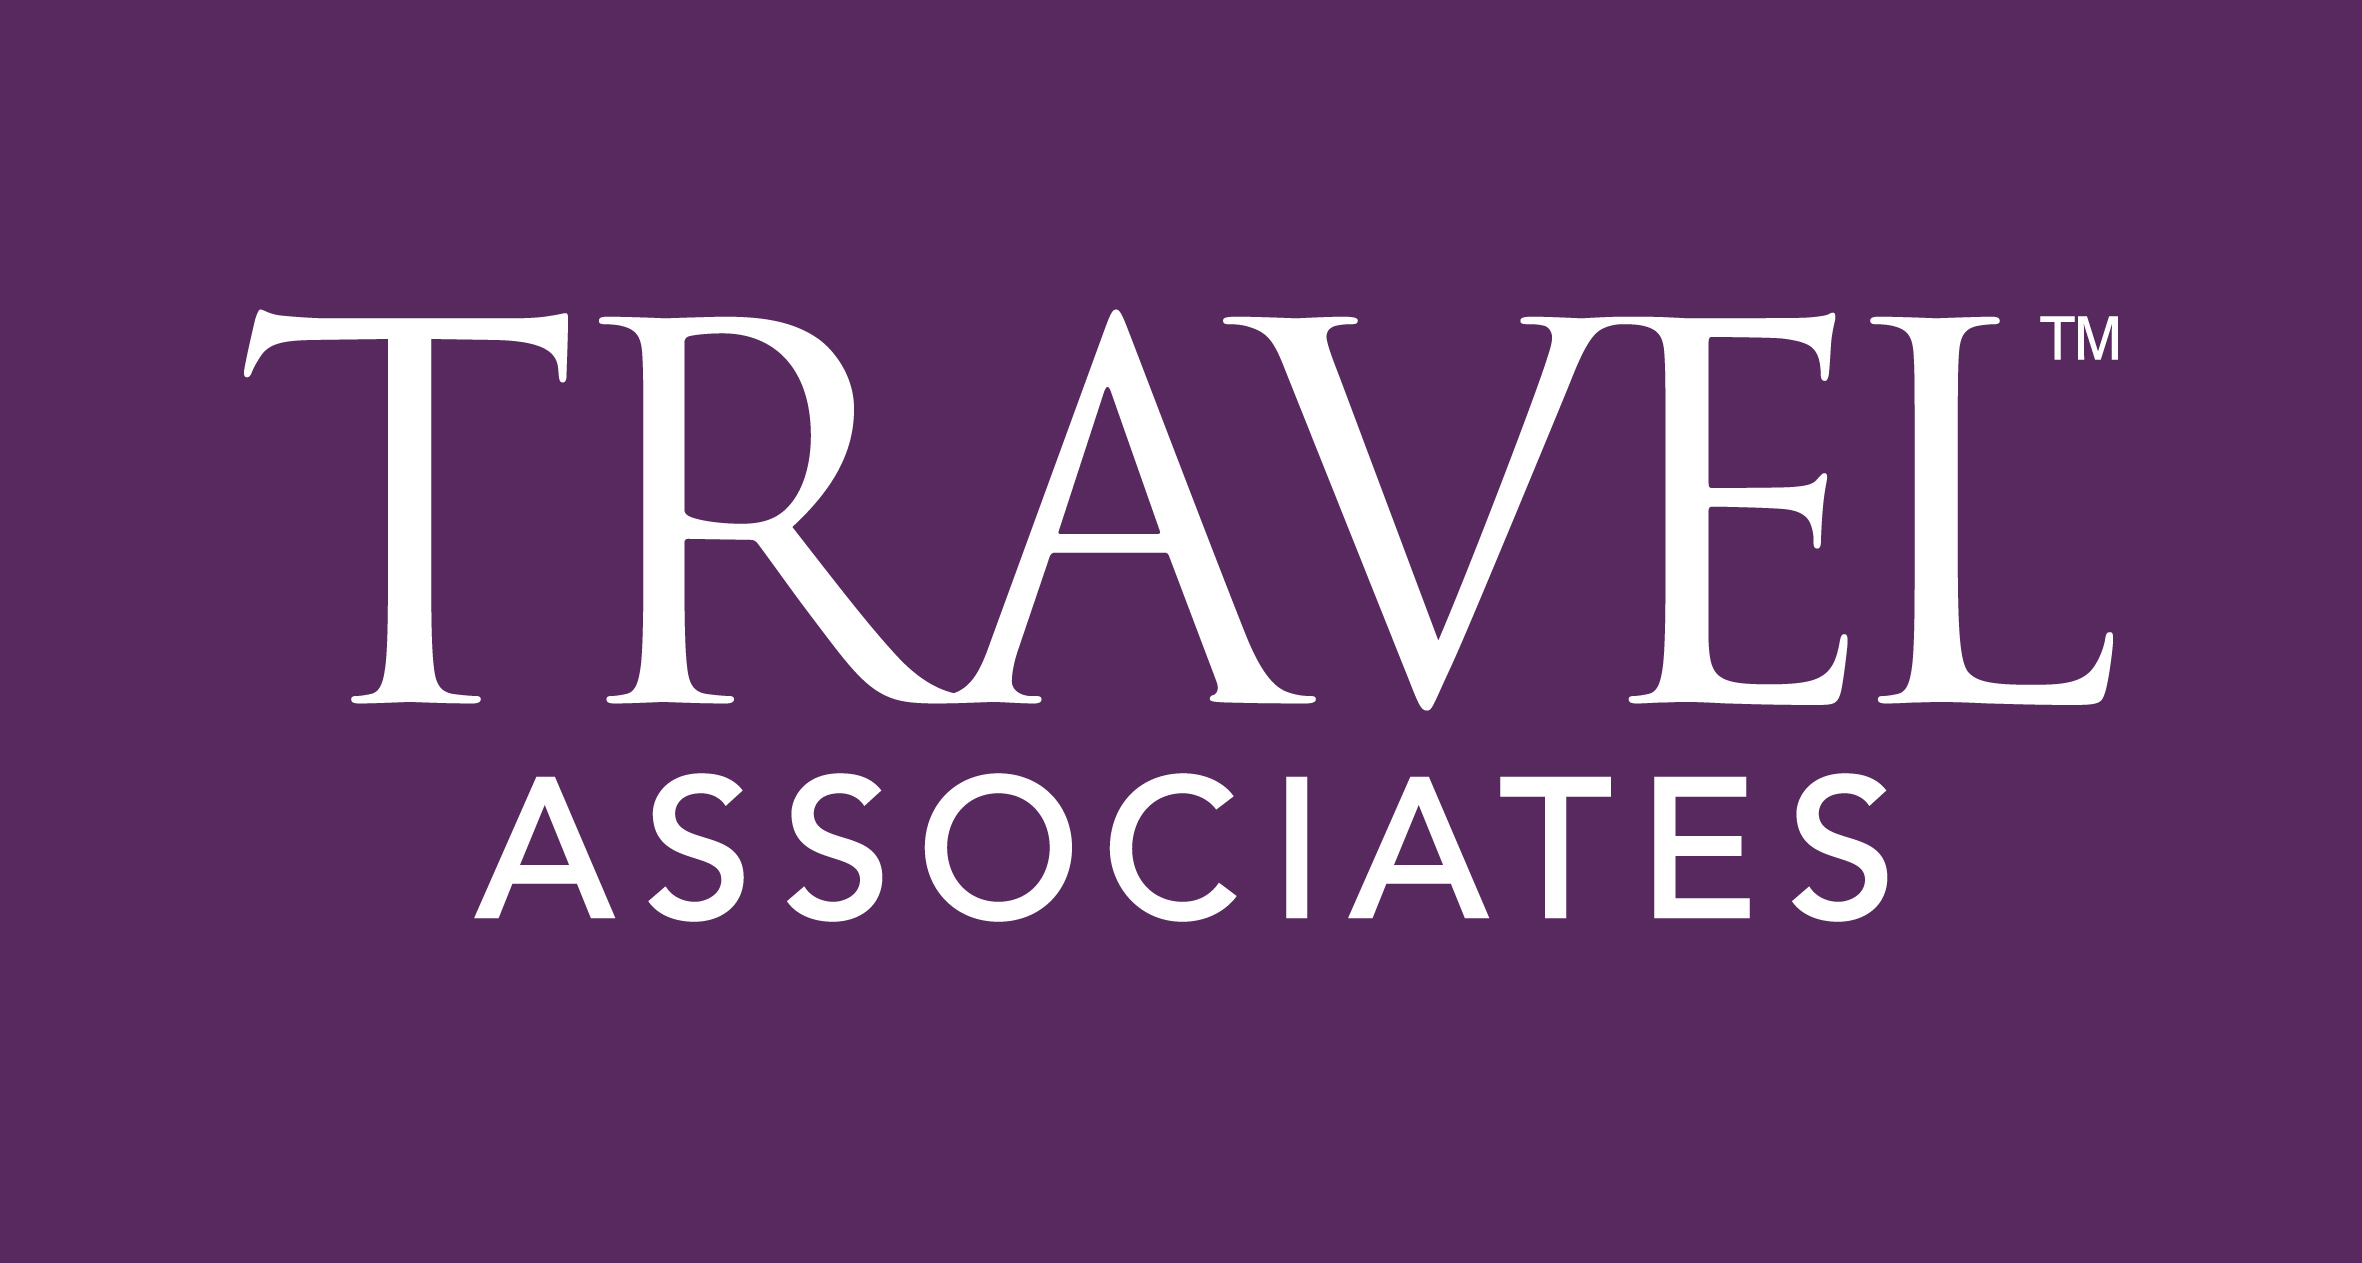 TRAVEL ASSOCIATES MANLY Logo